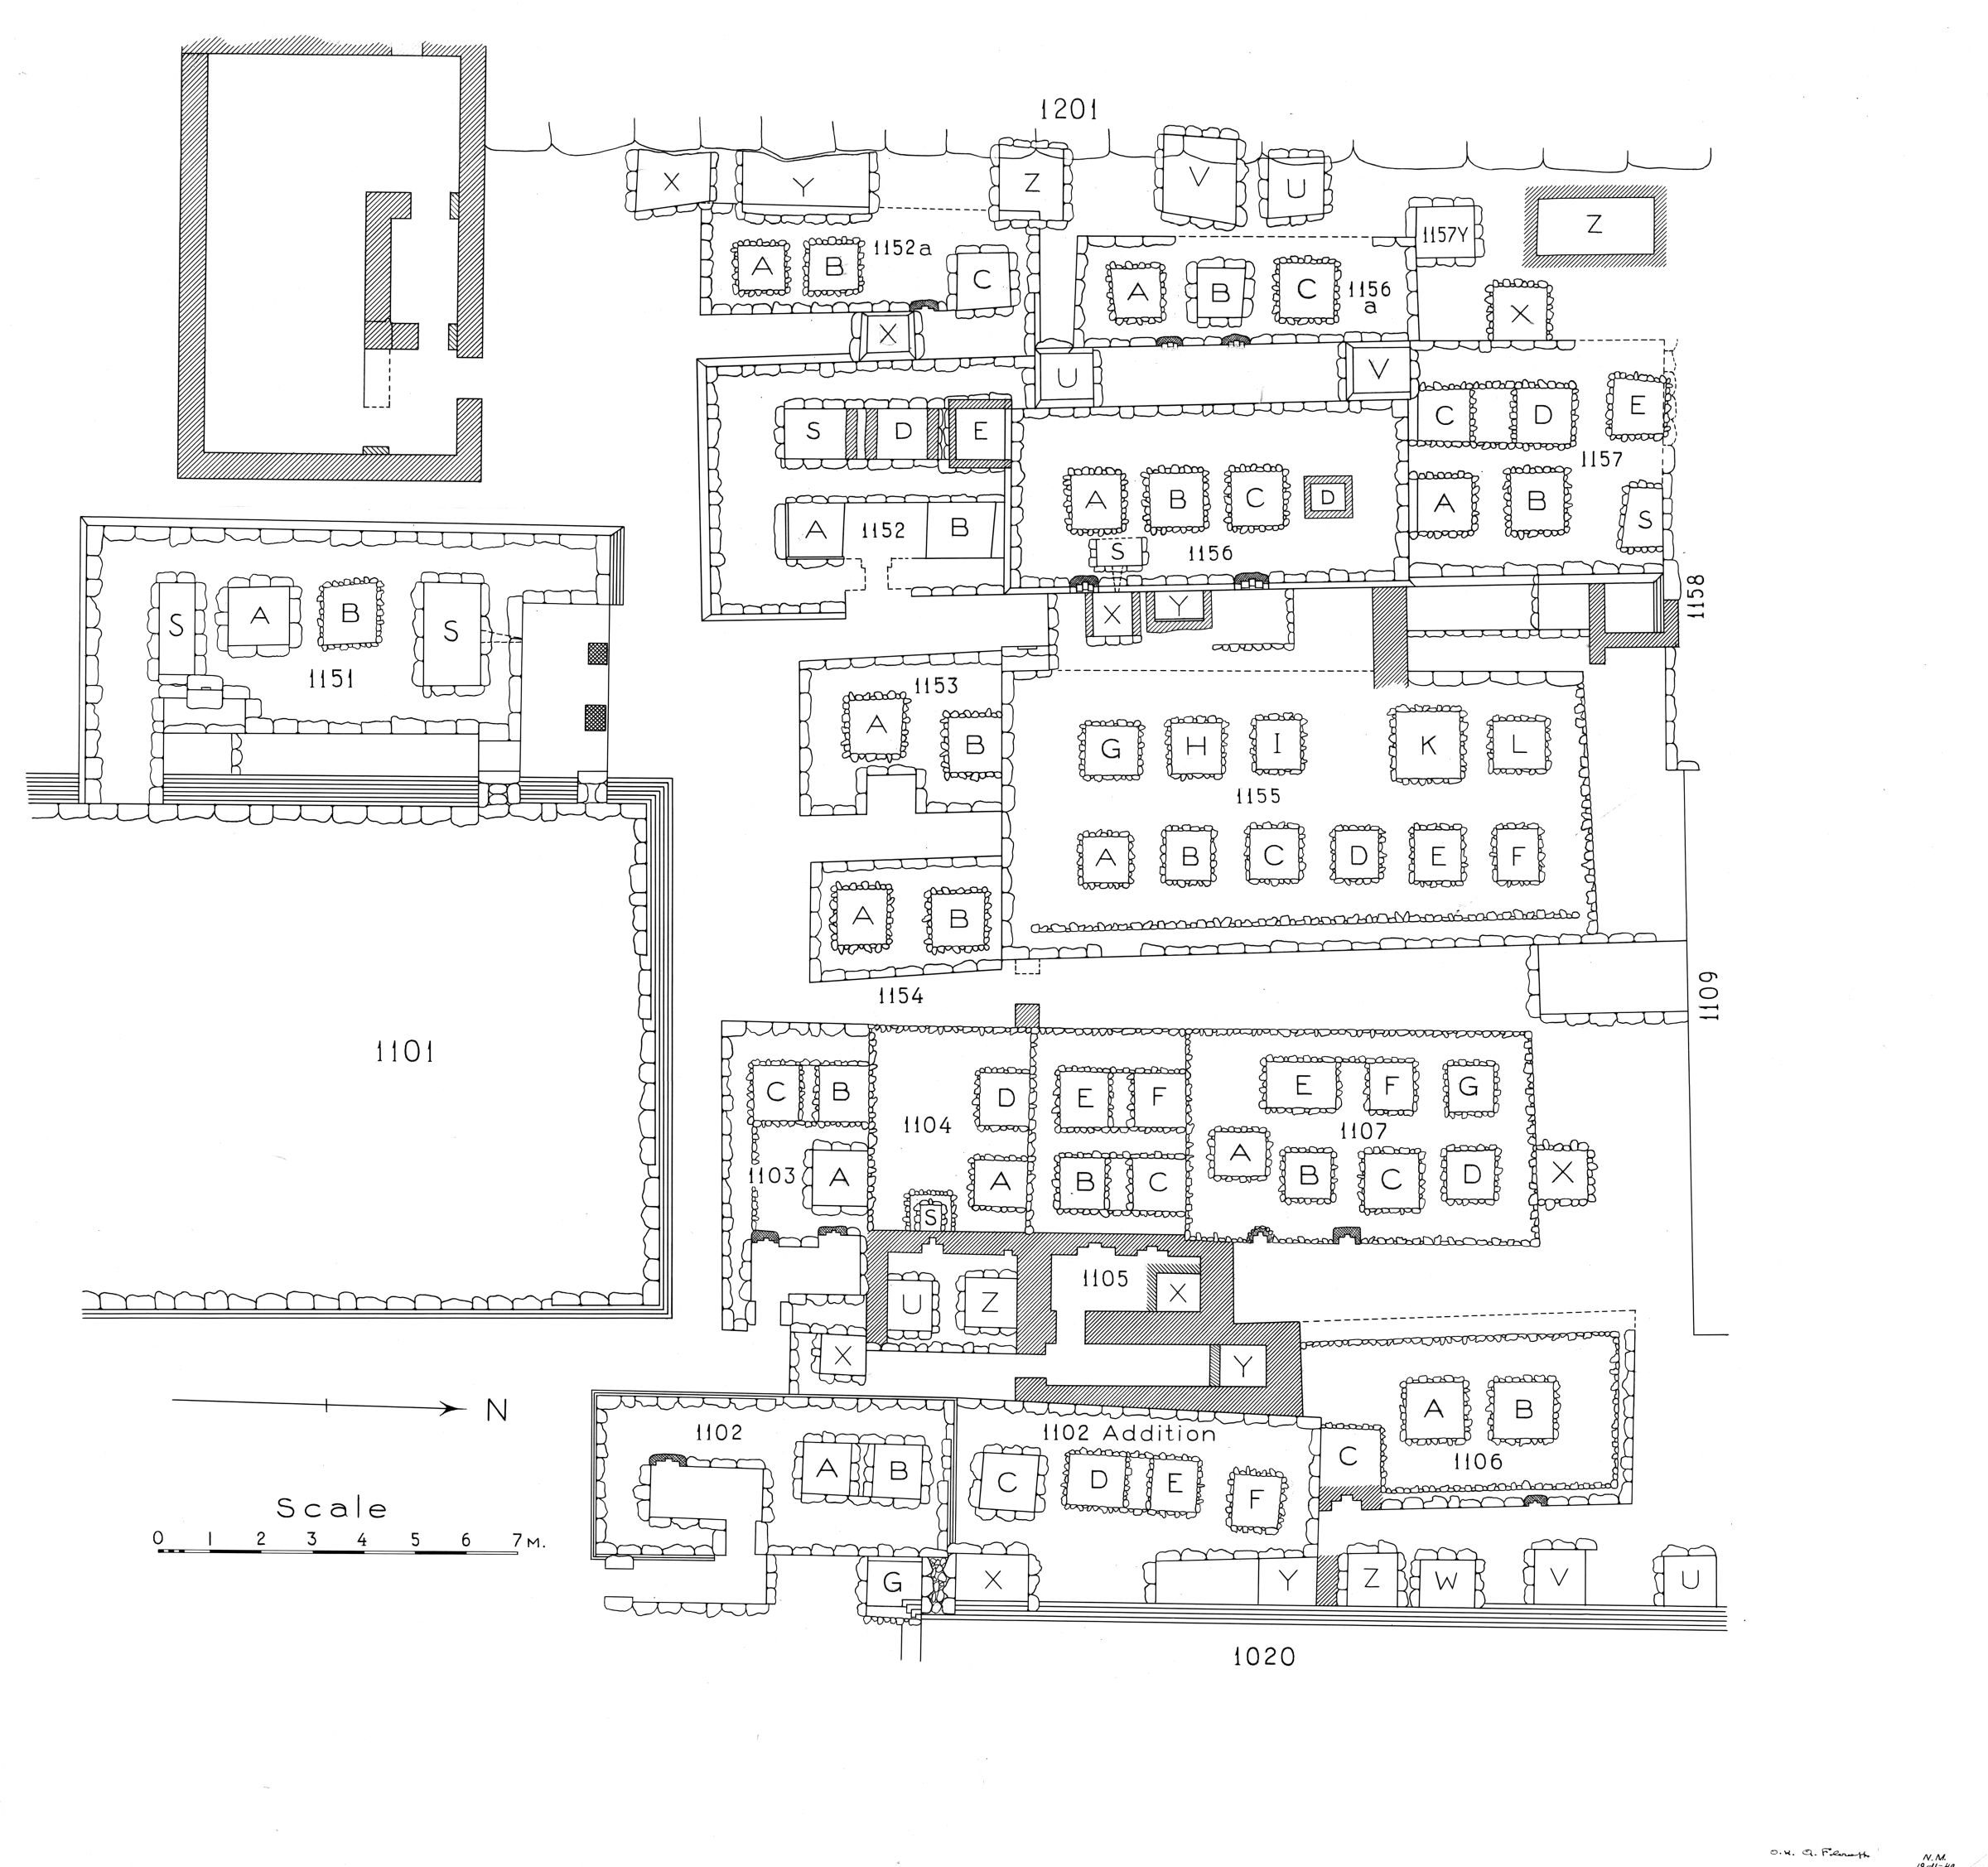 Maps and plans: Plan of cemetery G 1100 (1 of 2)